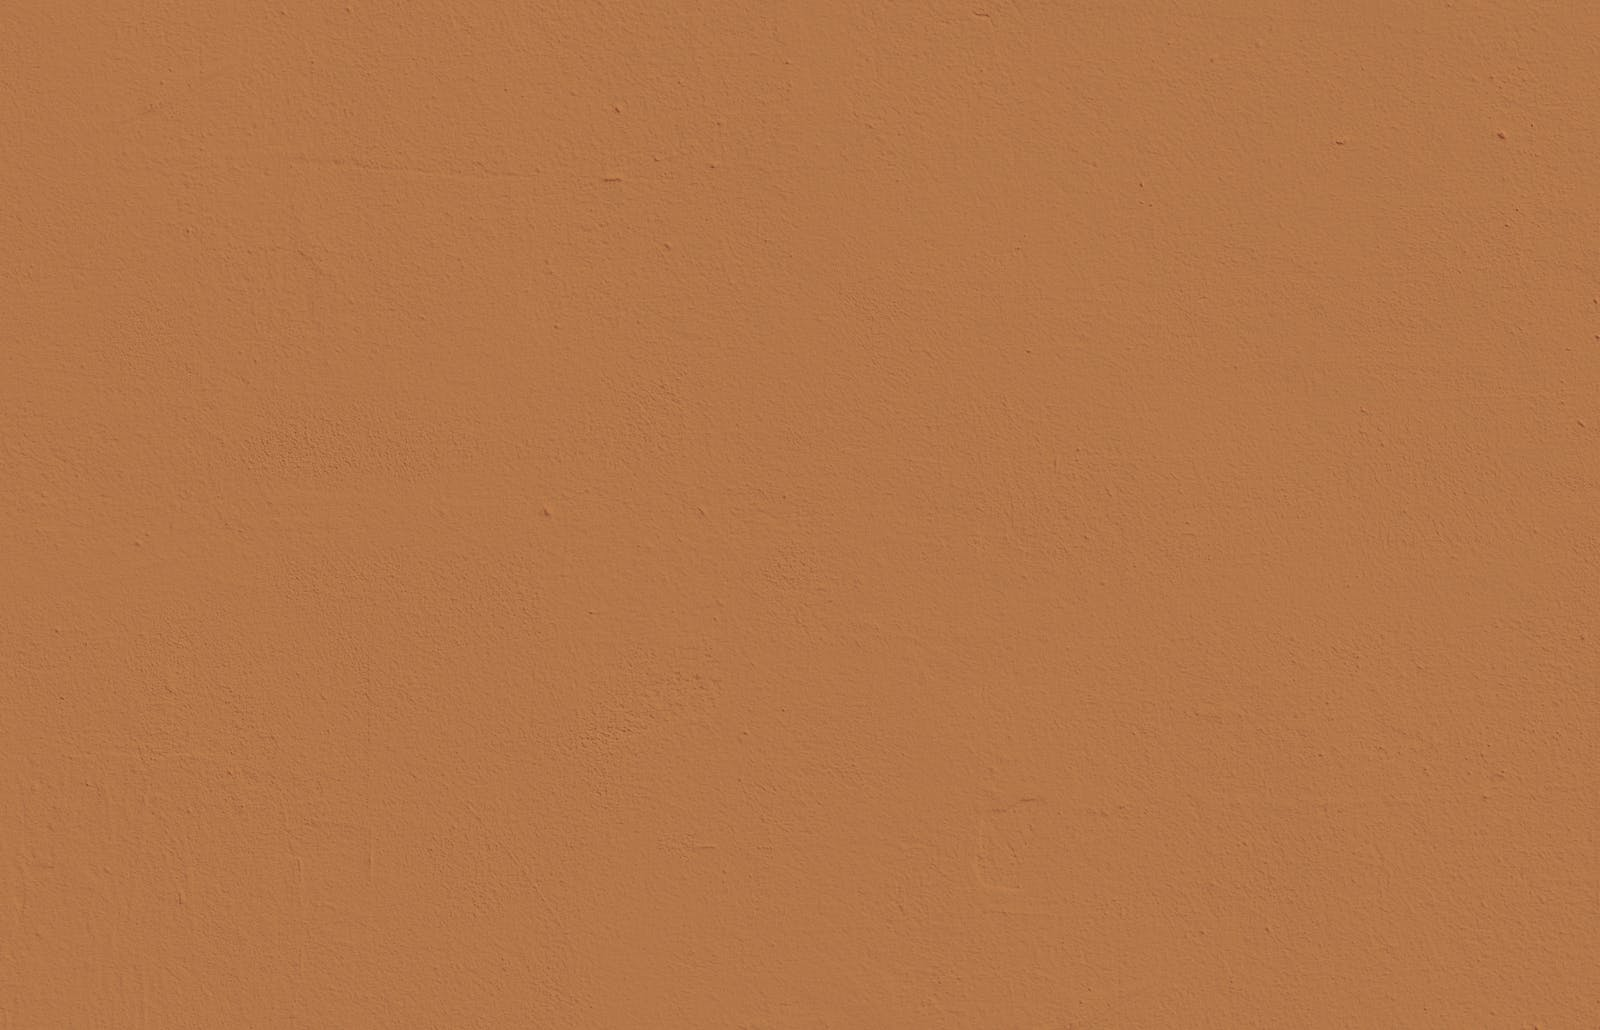 Textured wall painted in Lick Orange 02 paint